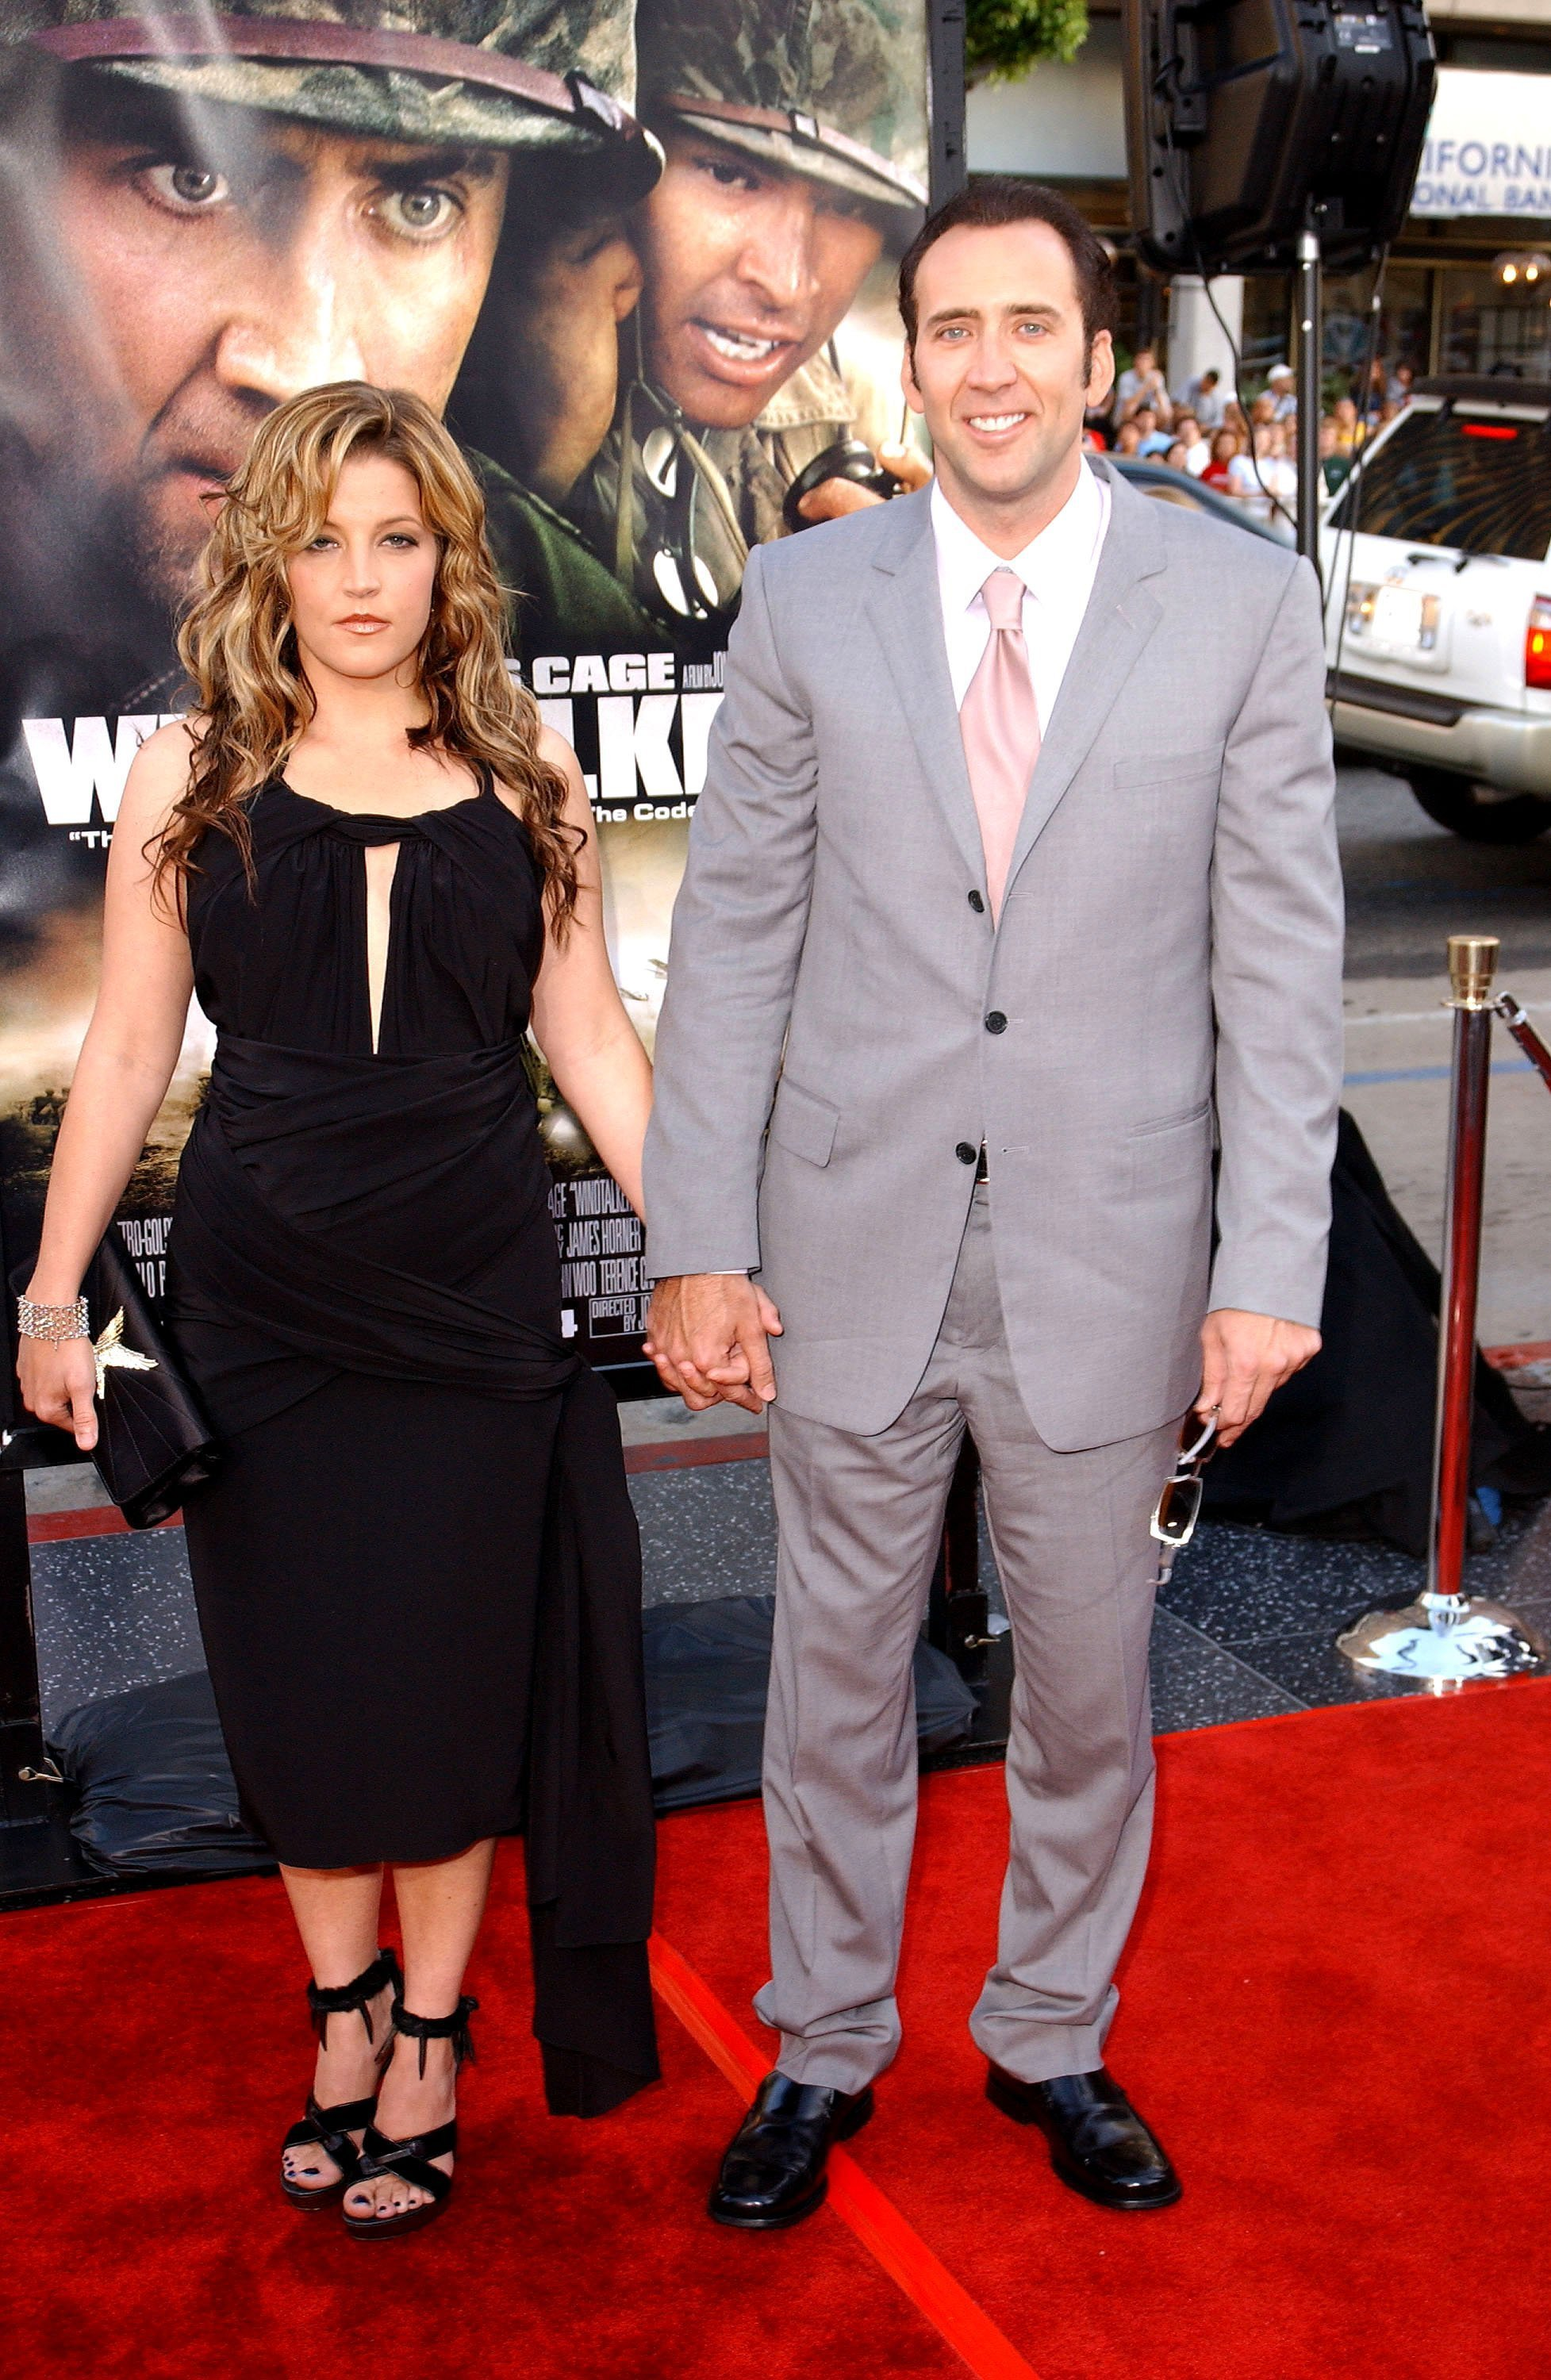 Lisa Marie Presley and Nicolas Cage on June 11, 2002 in Hollywood, California | Source: Getty Images